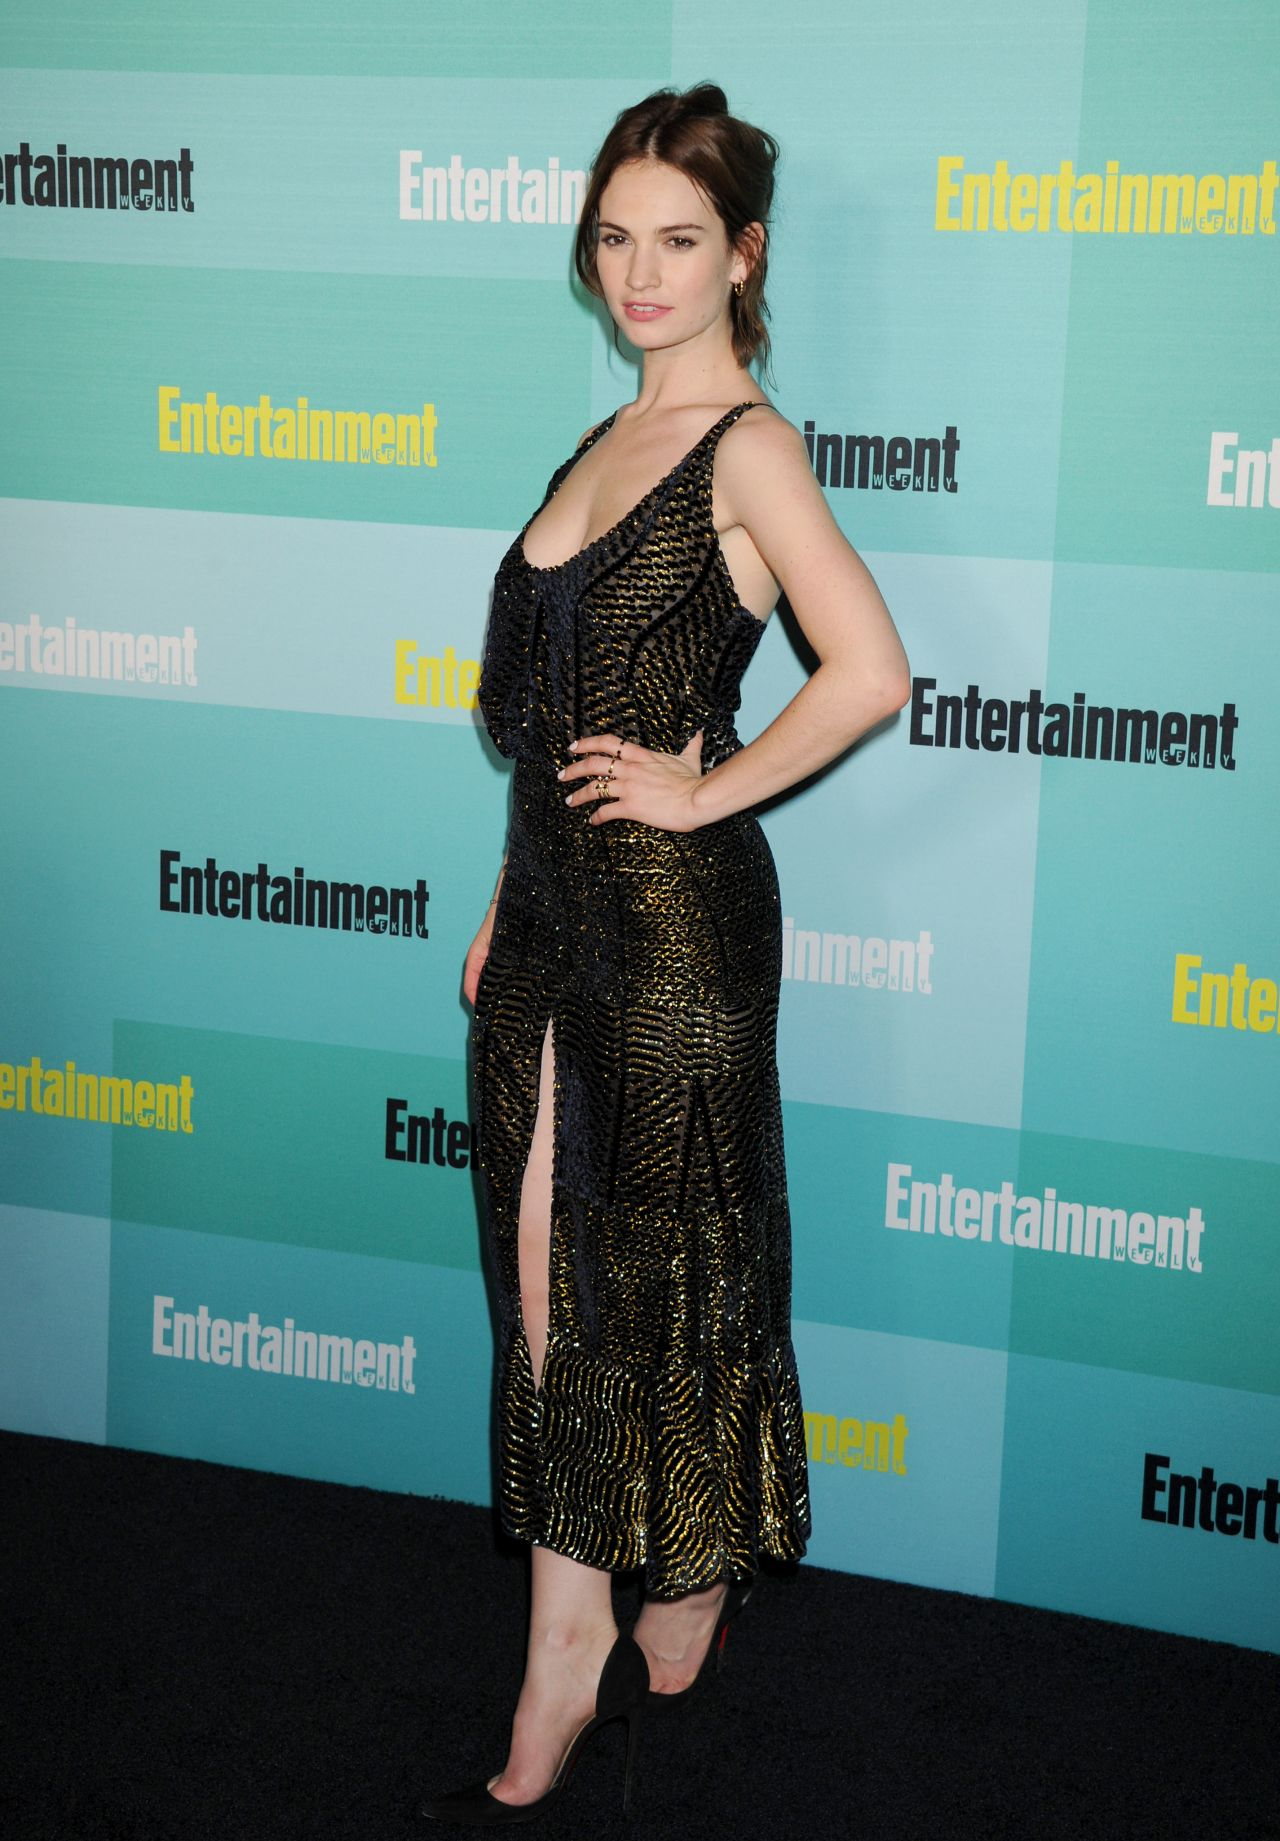 lily-james-entertainment-weekly-party-at-comic-con-in-san-diego-july-2015_1